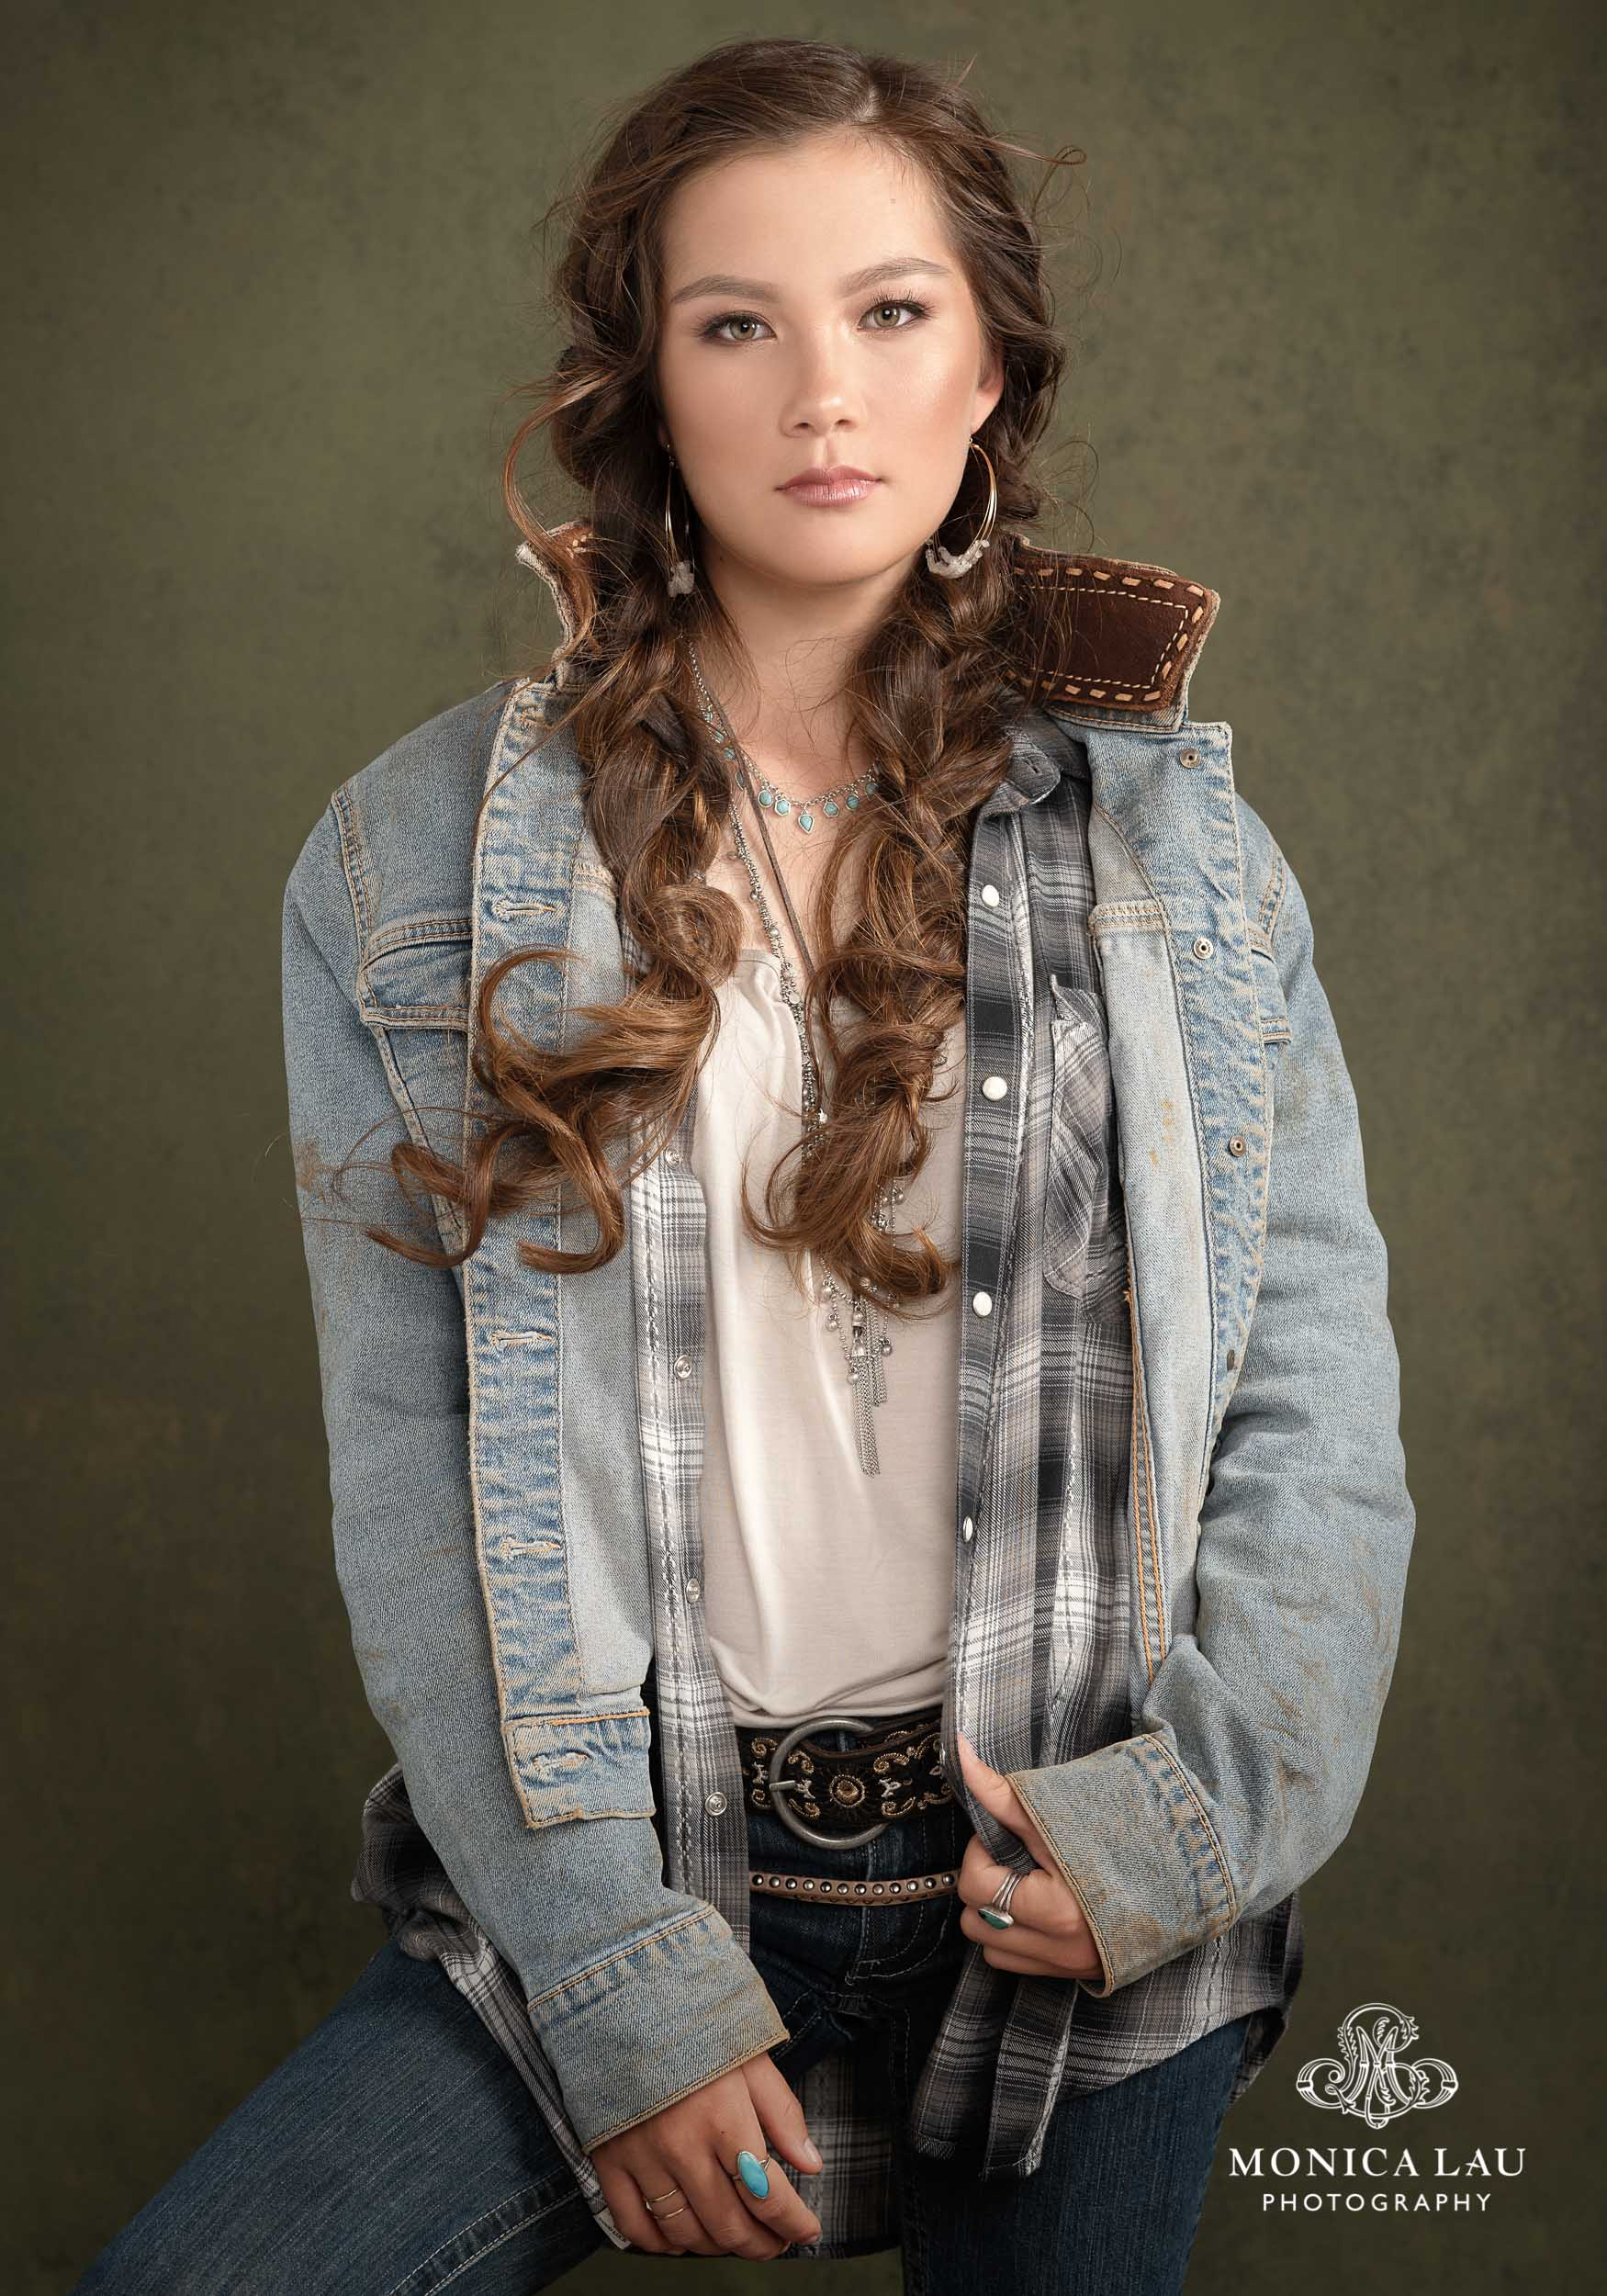 19MonicaLauPhotography-ShelbyWallenCowgirlPortraits0857-2.jpg